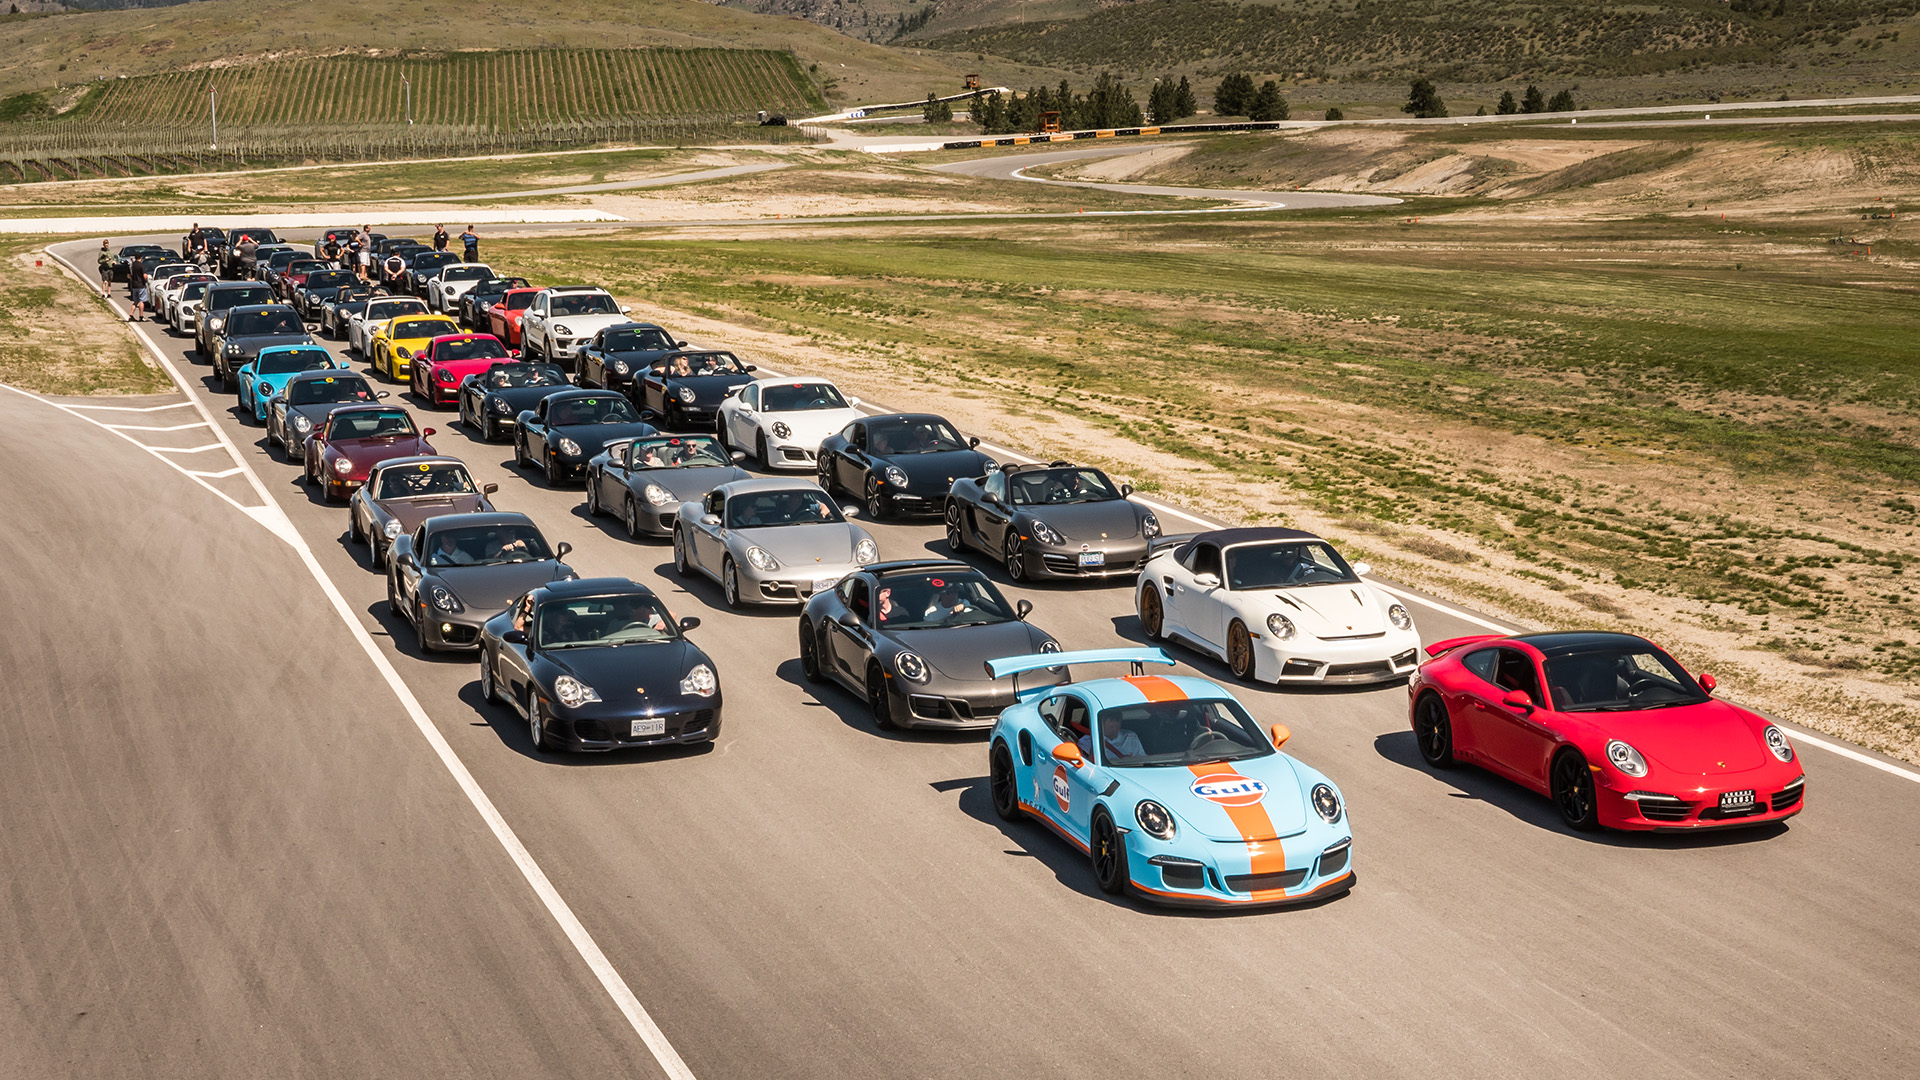 August Group Track Day – Porsche-Only – July 6, 2019